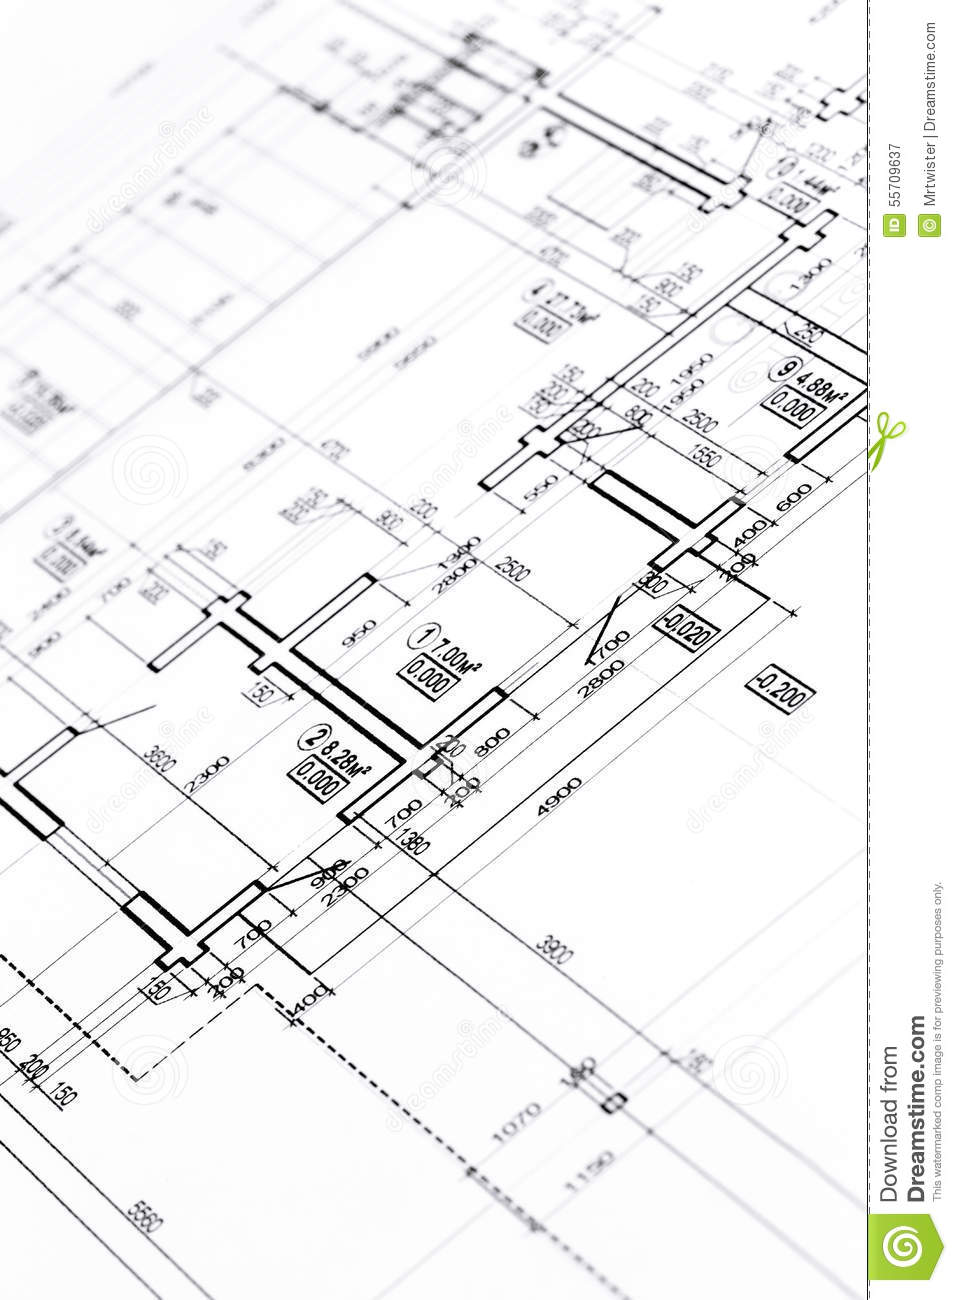 Architectural floor plan stock photo image 55709637 for Floor plans architecture